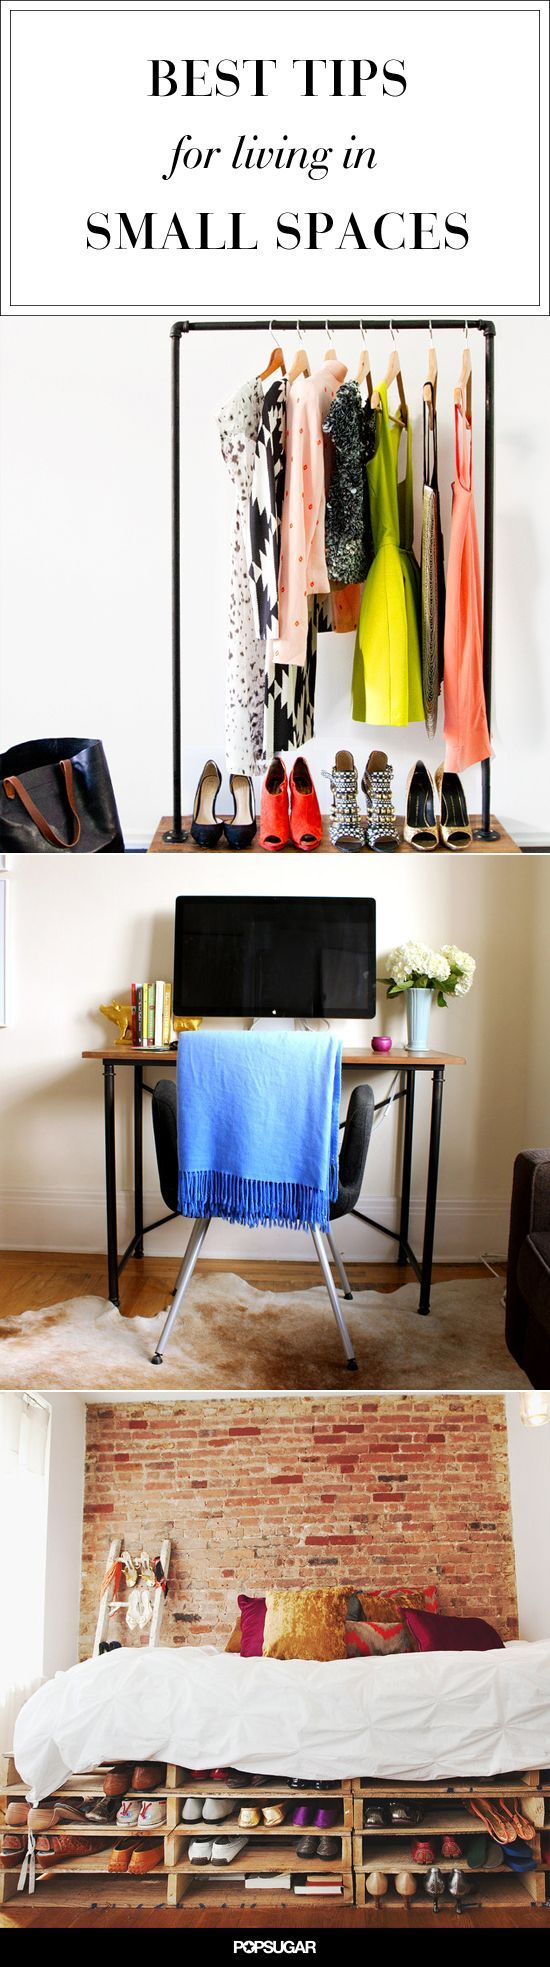 Small-Space Living Tricks That Make a Big Difference ...